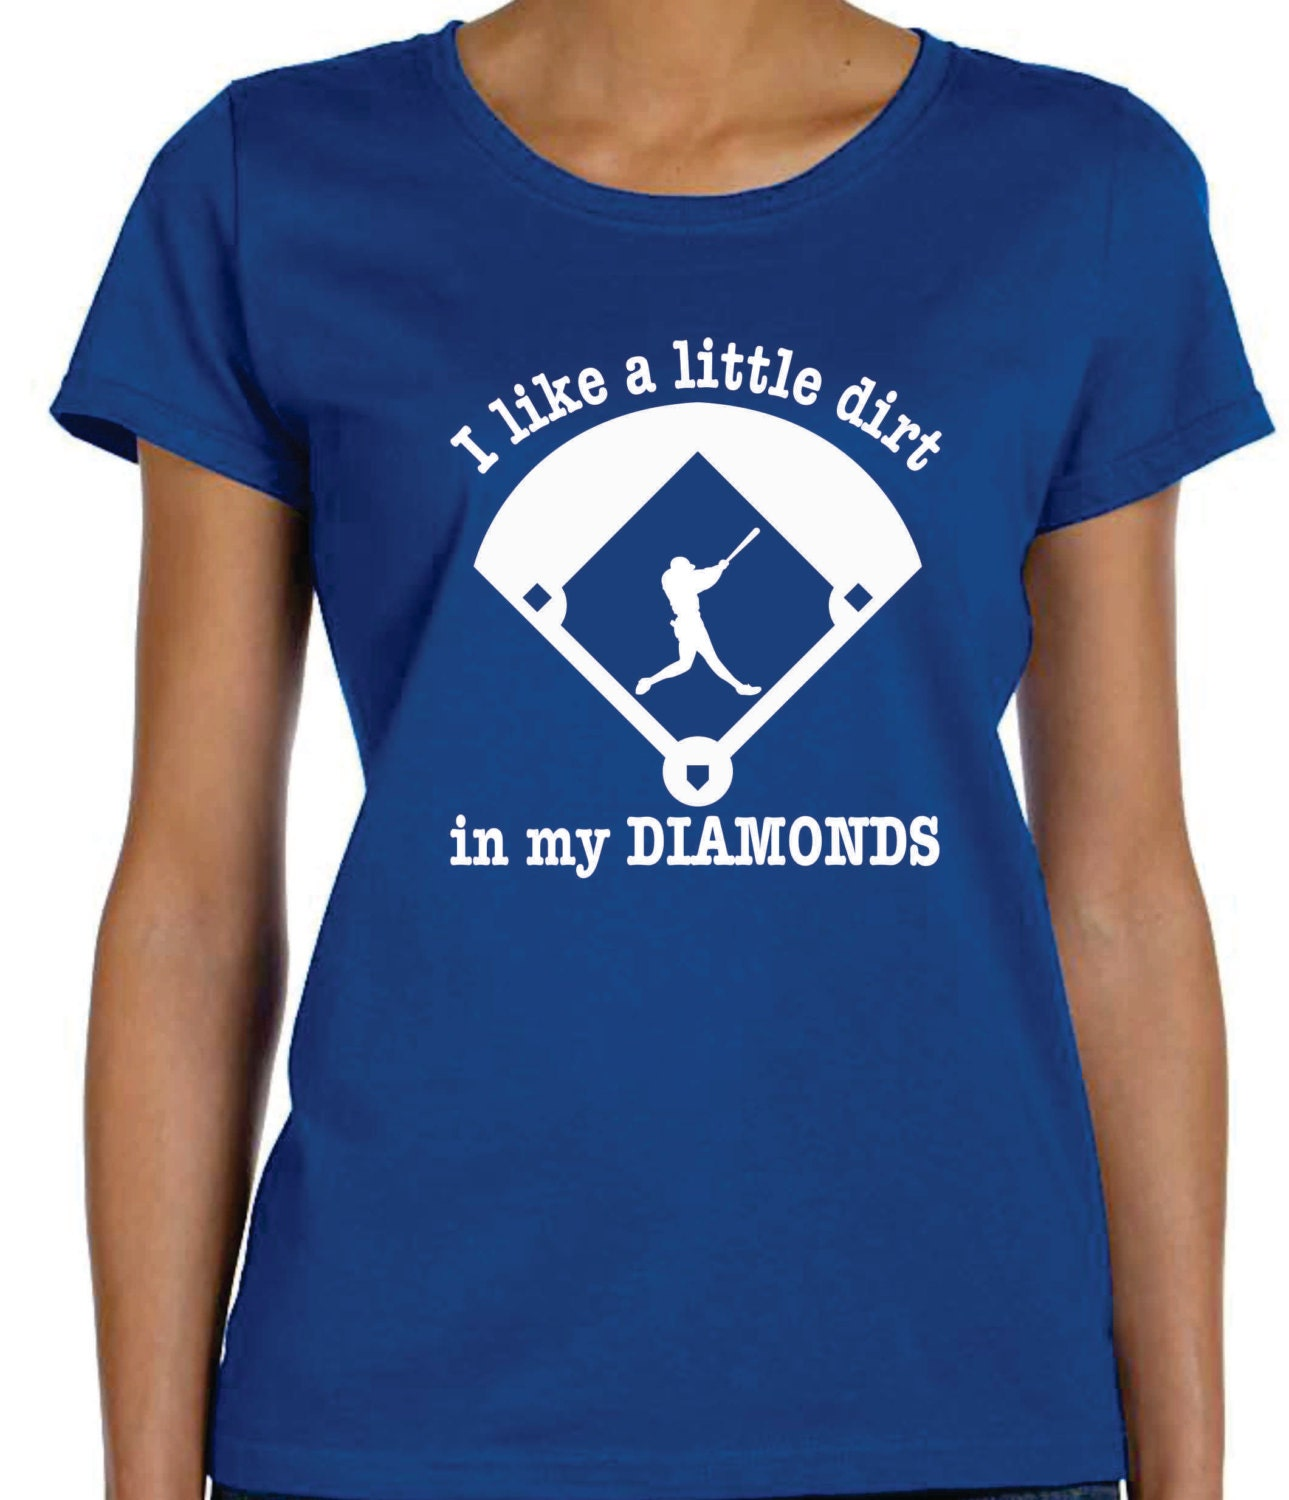 Cool baseball t shirt designs the image Designer baseball shirts